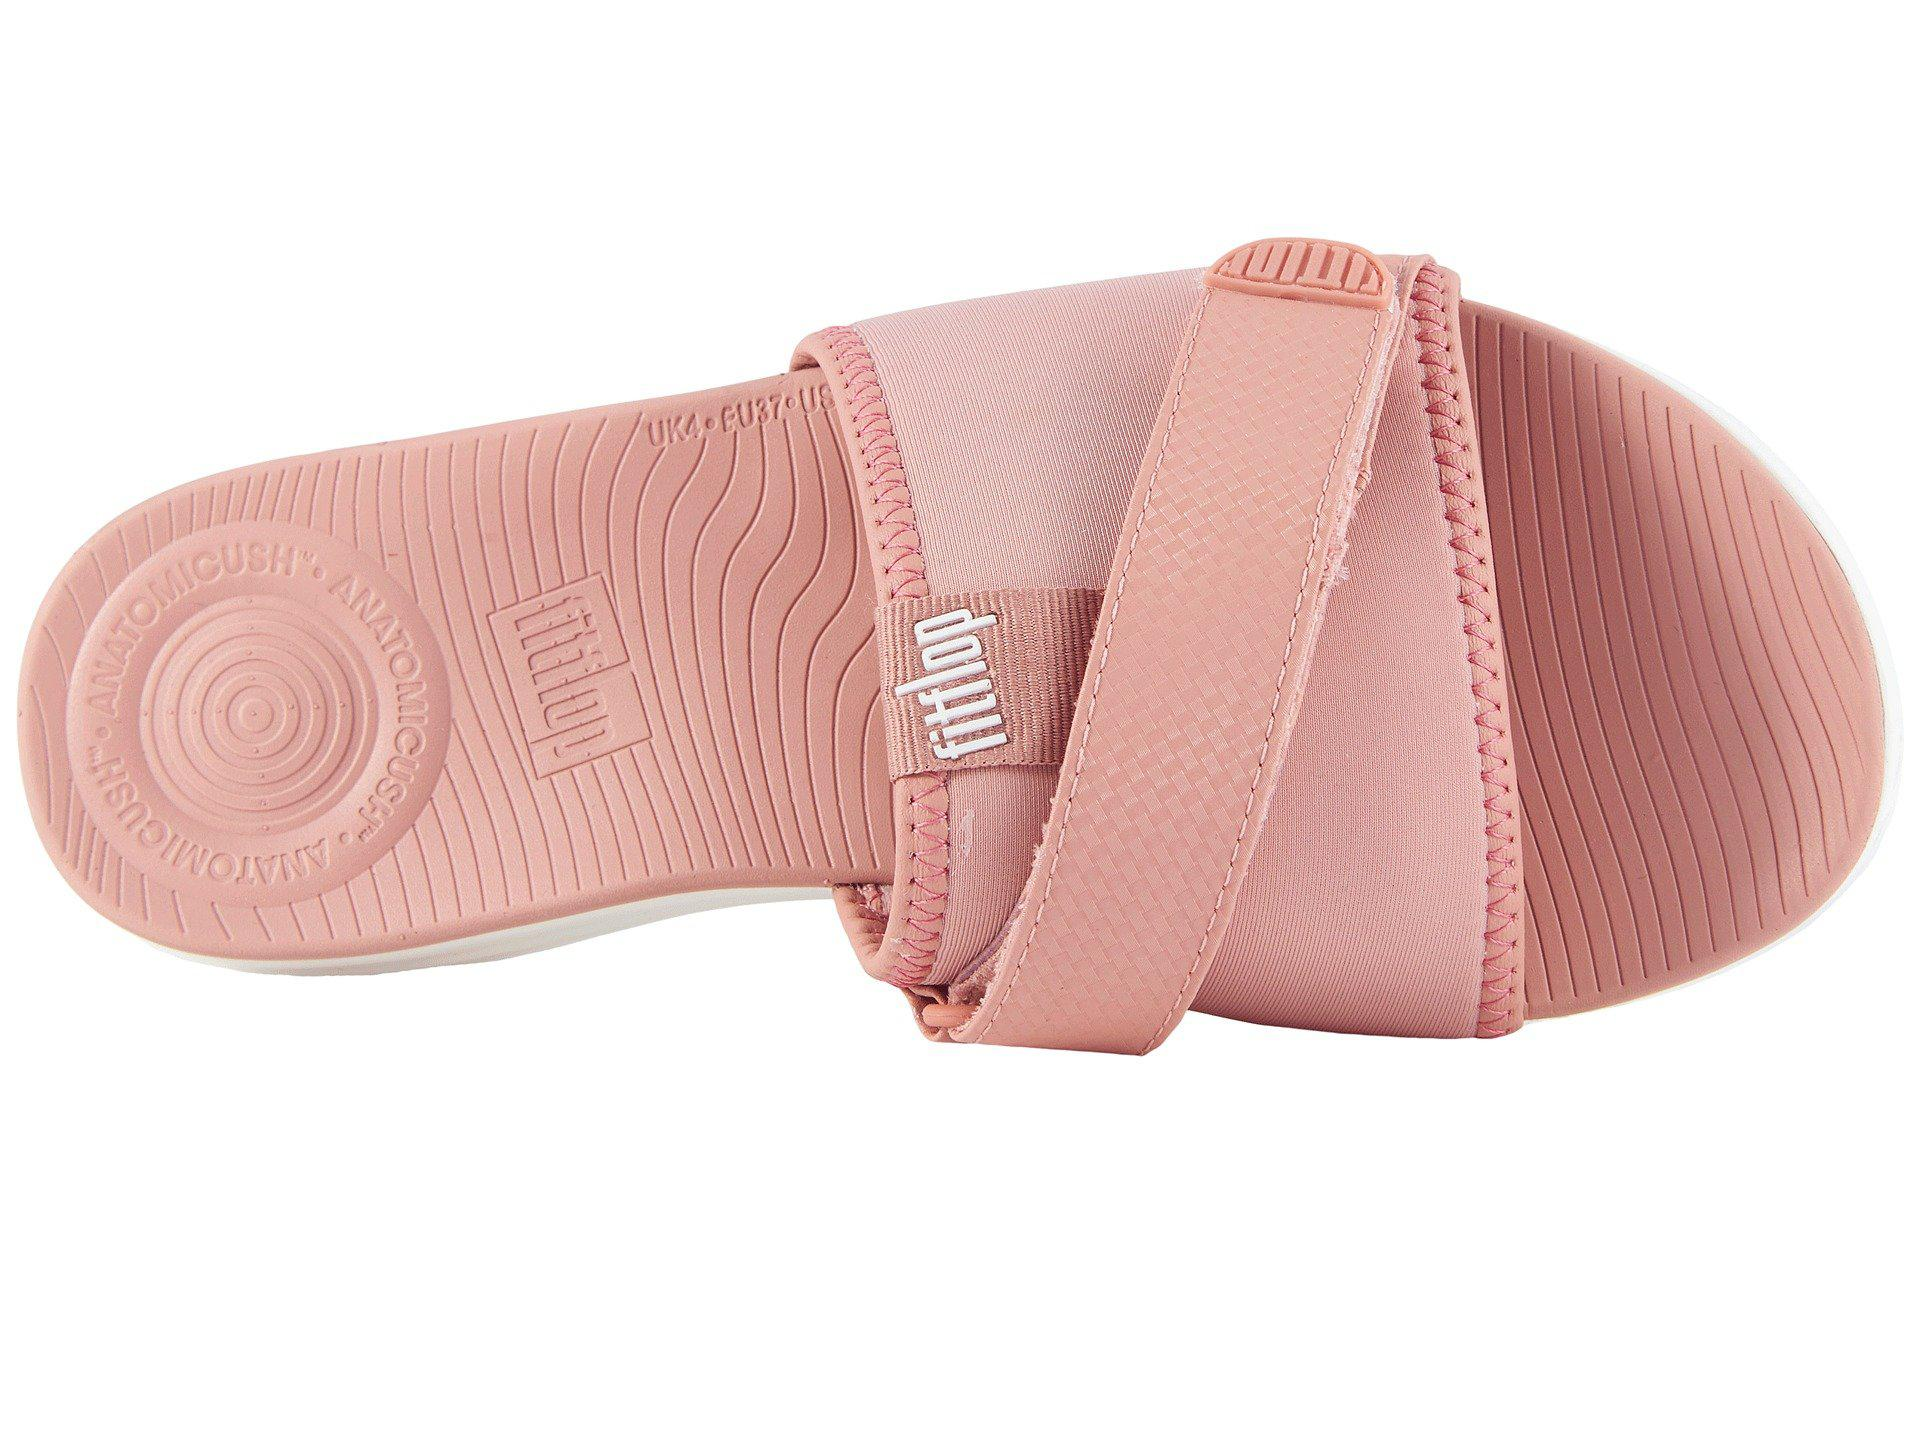 727d2caeac2a51 Fitflop - Pink Neoflex Slide Sandals - Lyst. View fullscreen exquisite  style e175c e3eb0  Fitflop. Women ...